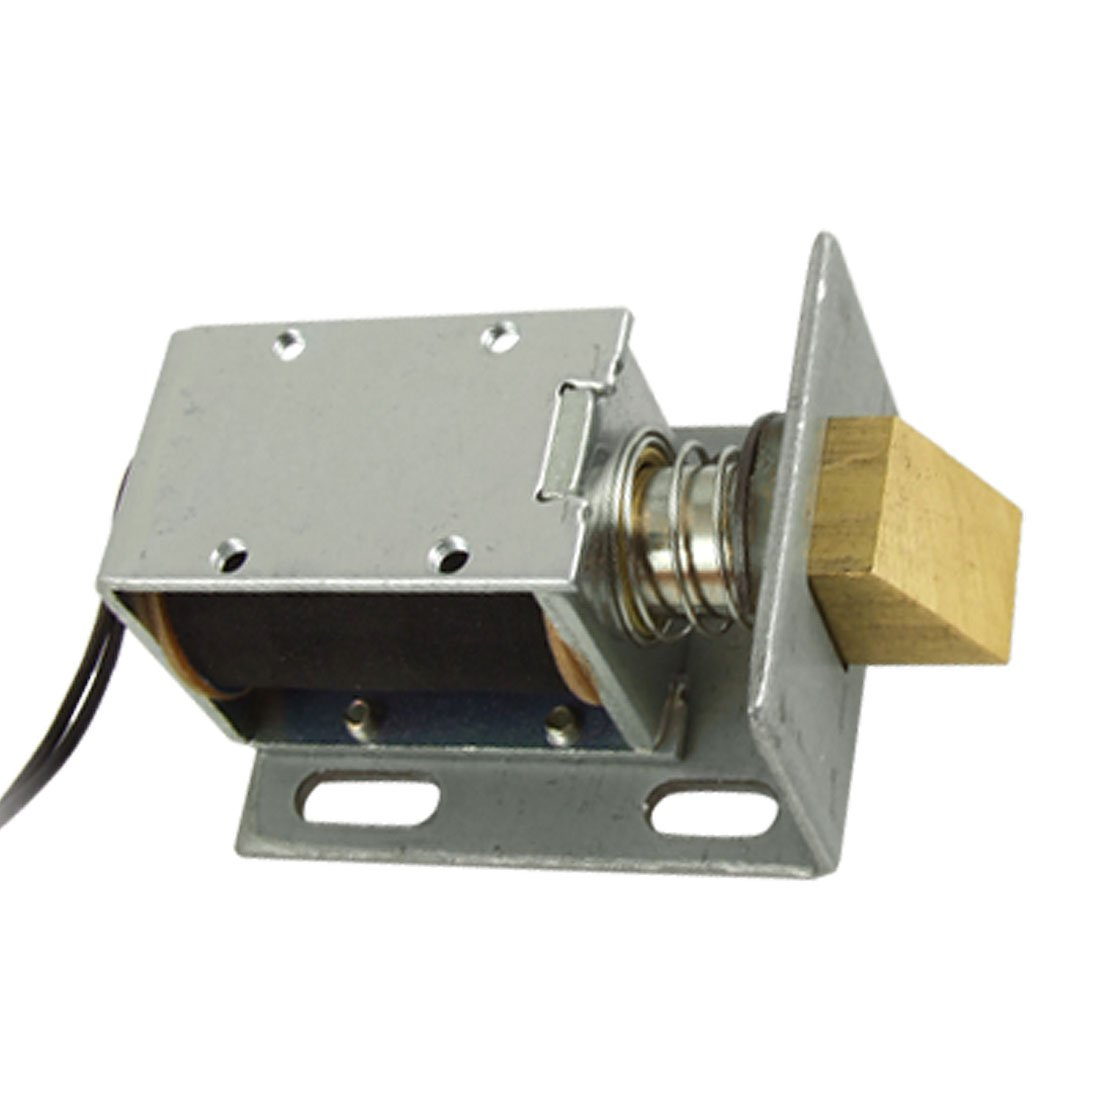 Uxcell Dc 12v Open Frame Type Solenoid For Electric Door Motor Diagram As Well Access Control Contact Electrical Lock Home Improvement